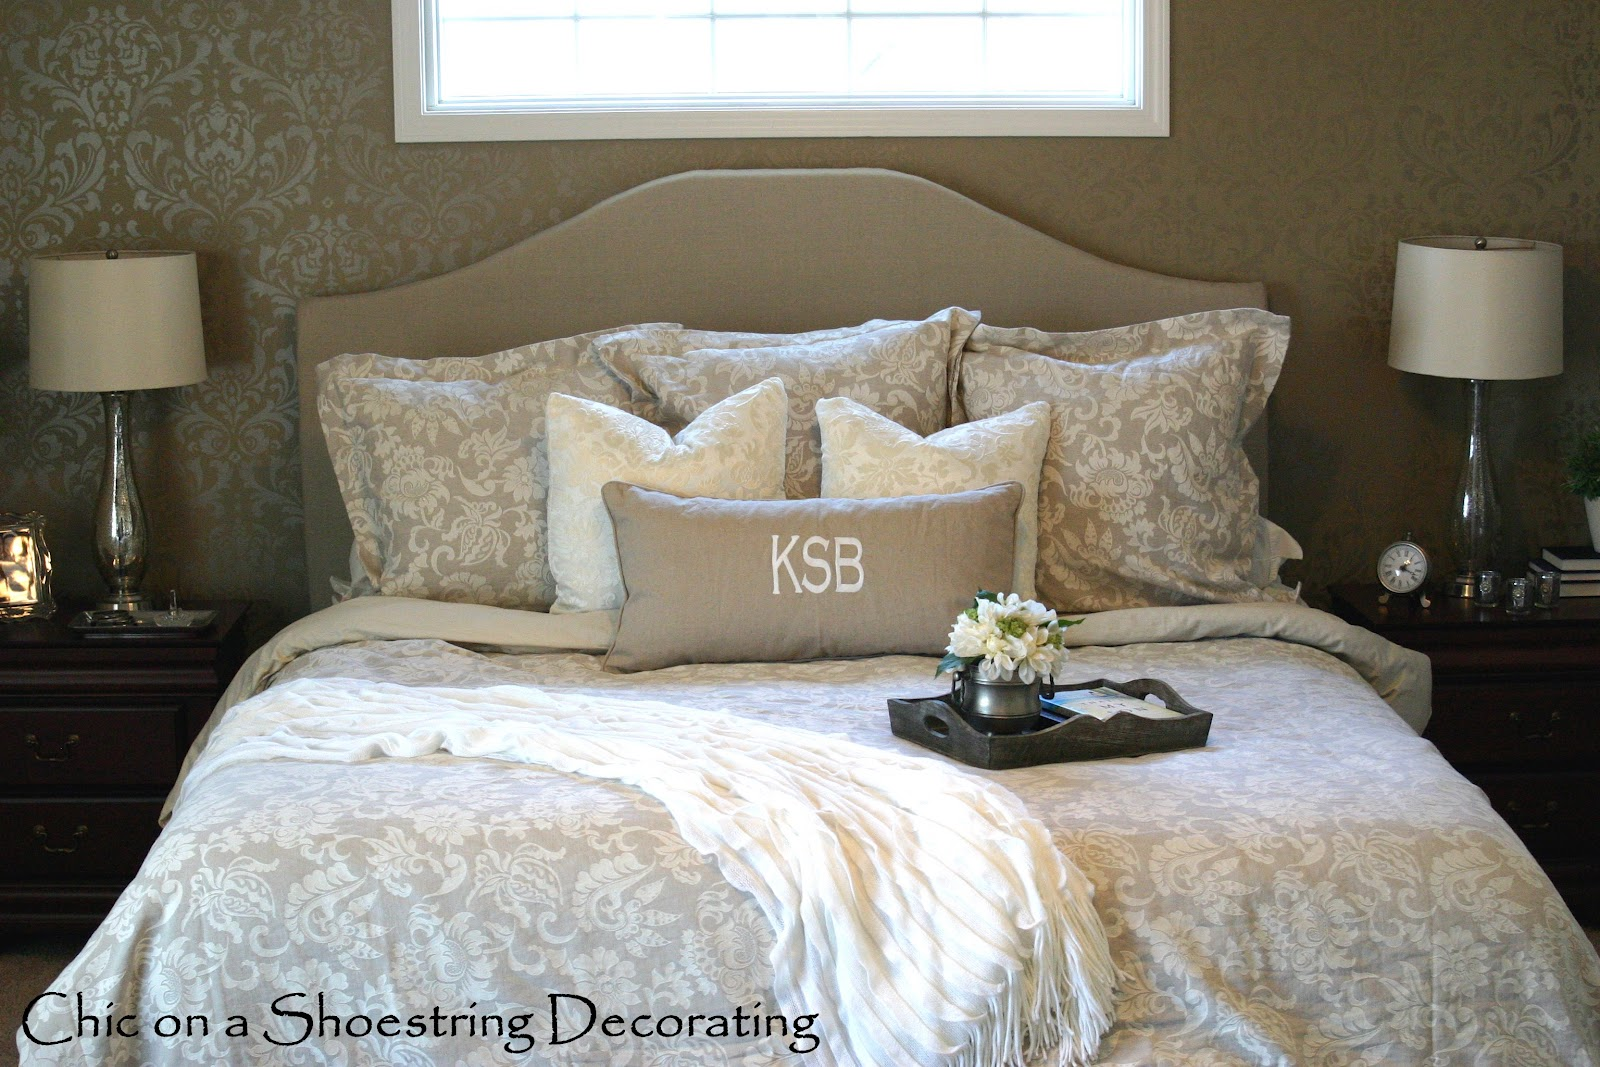 Headboard Decorating Ideas Part - 40: How To Make An Upholstered Headboard